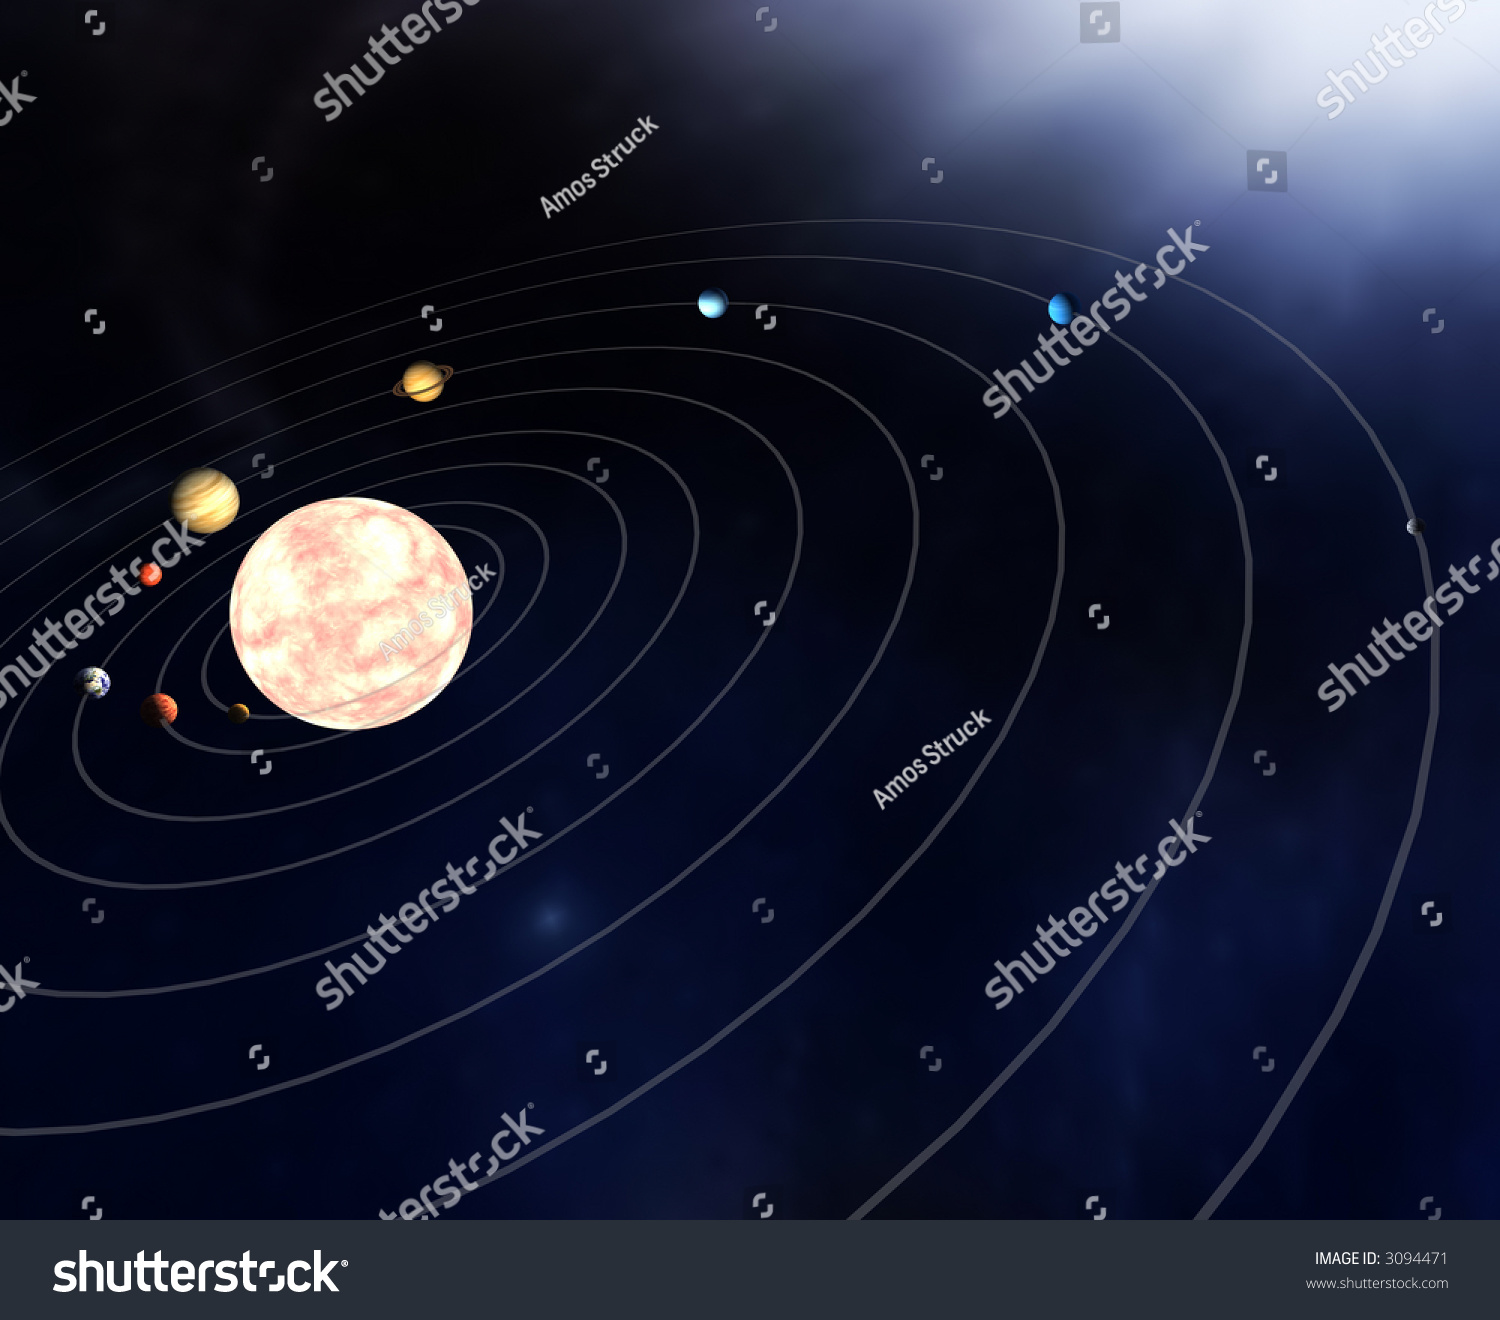 Delighted Bulldogsecurity.com Wiring Tiny Gibson 3 Way Switch Round 5 Way Switch Diagram 1 Humbucker 1 Volume Young Bulldog Vehicle WhiteHow To Install Remote Start Alarm Diagram Planets Solar System Stock Illustration 3094471   Shutterstock